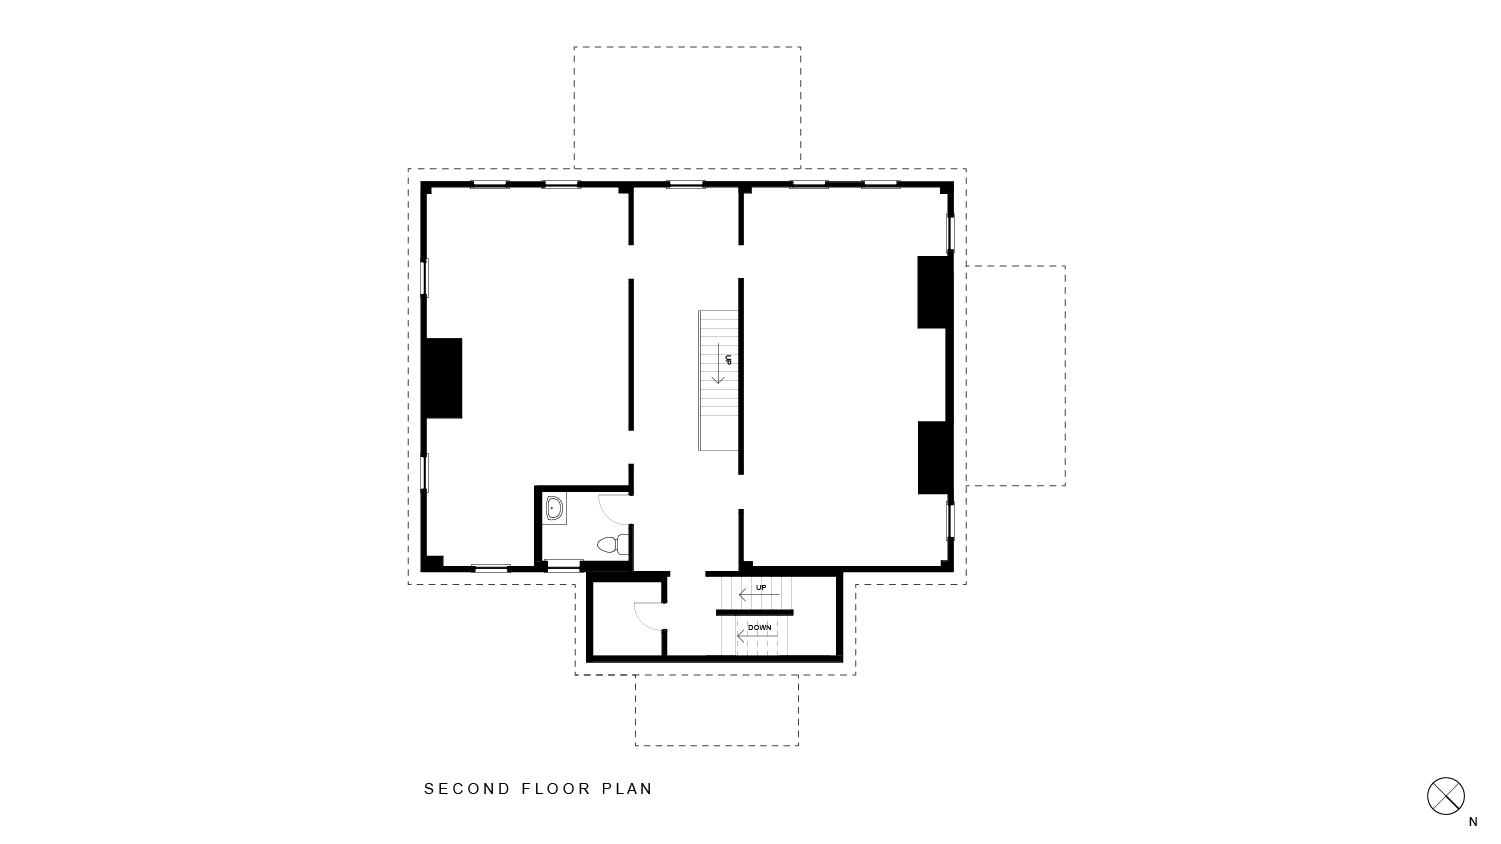 milford-community-house-second-floor-plan